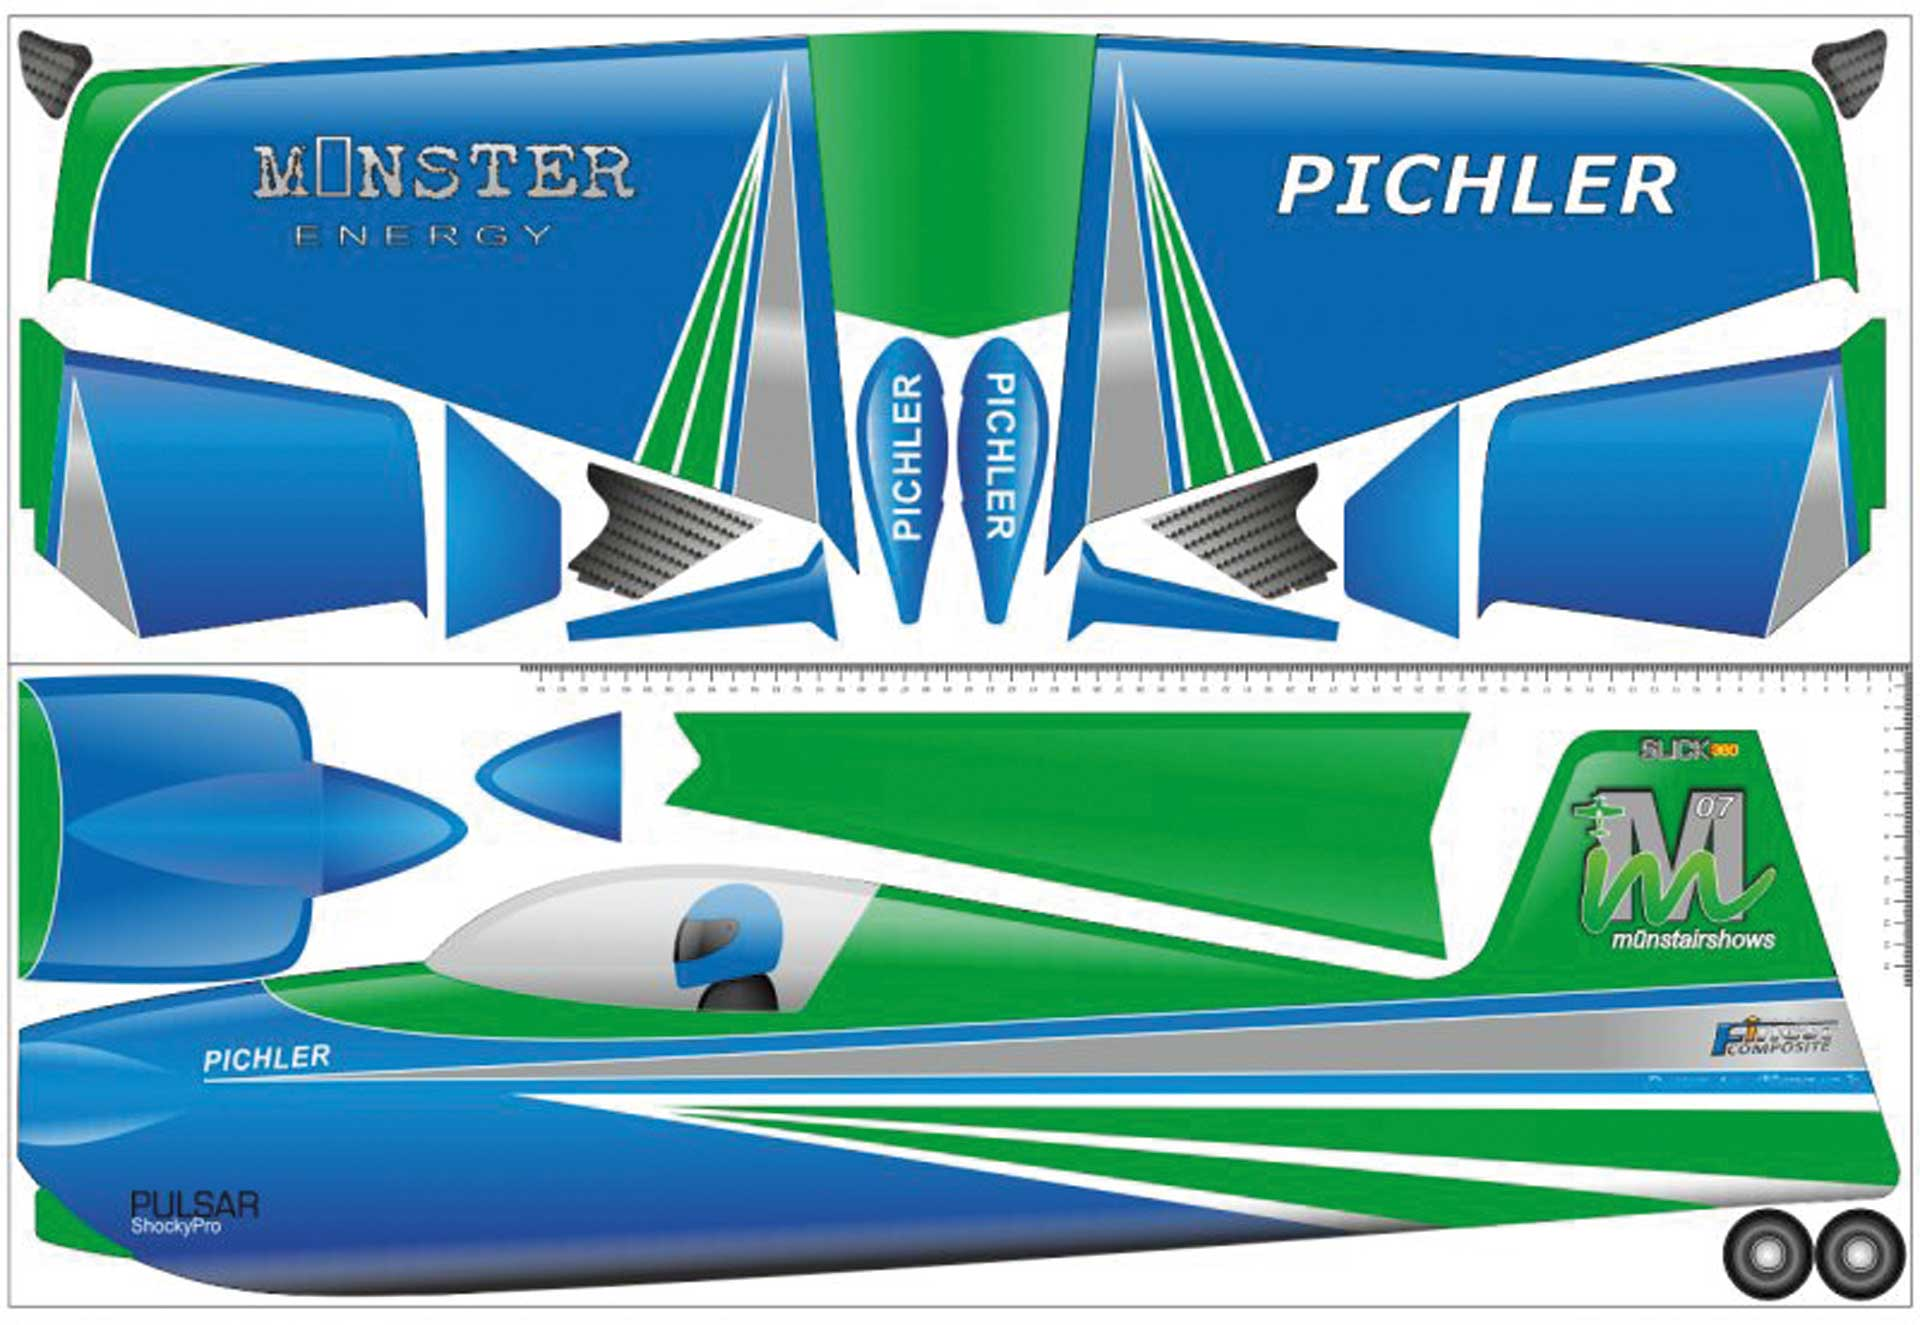 PICHLER Slick 360 (green) /840 mm made of Super board